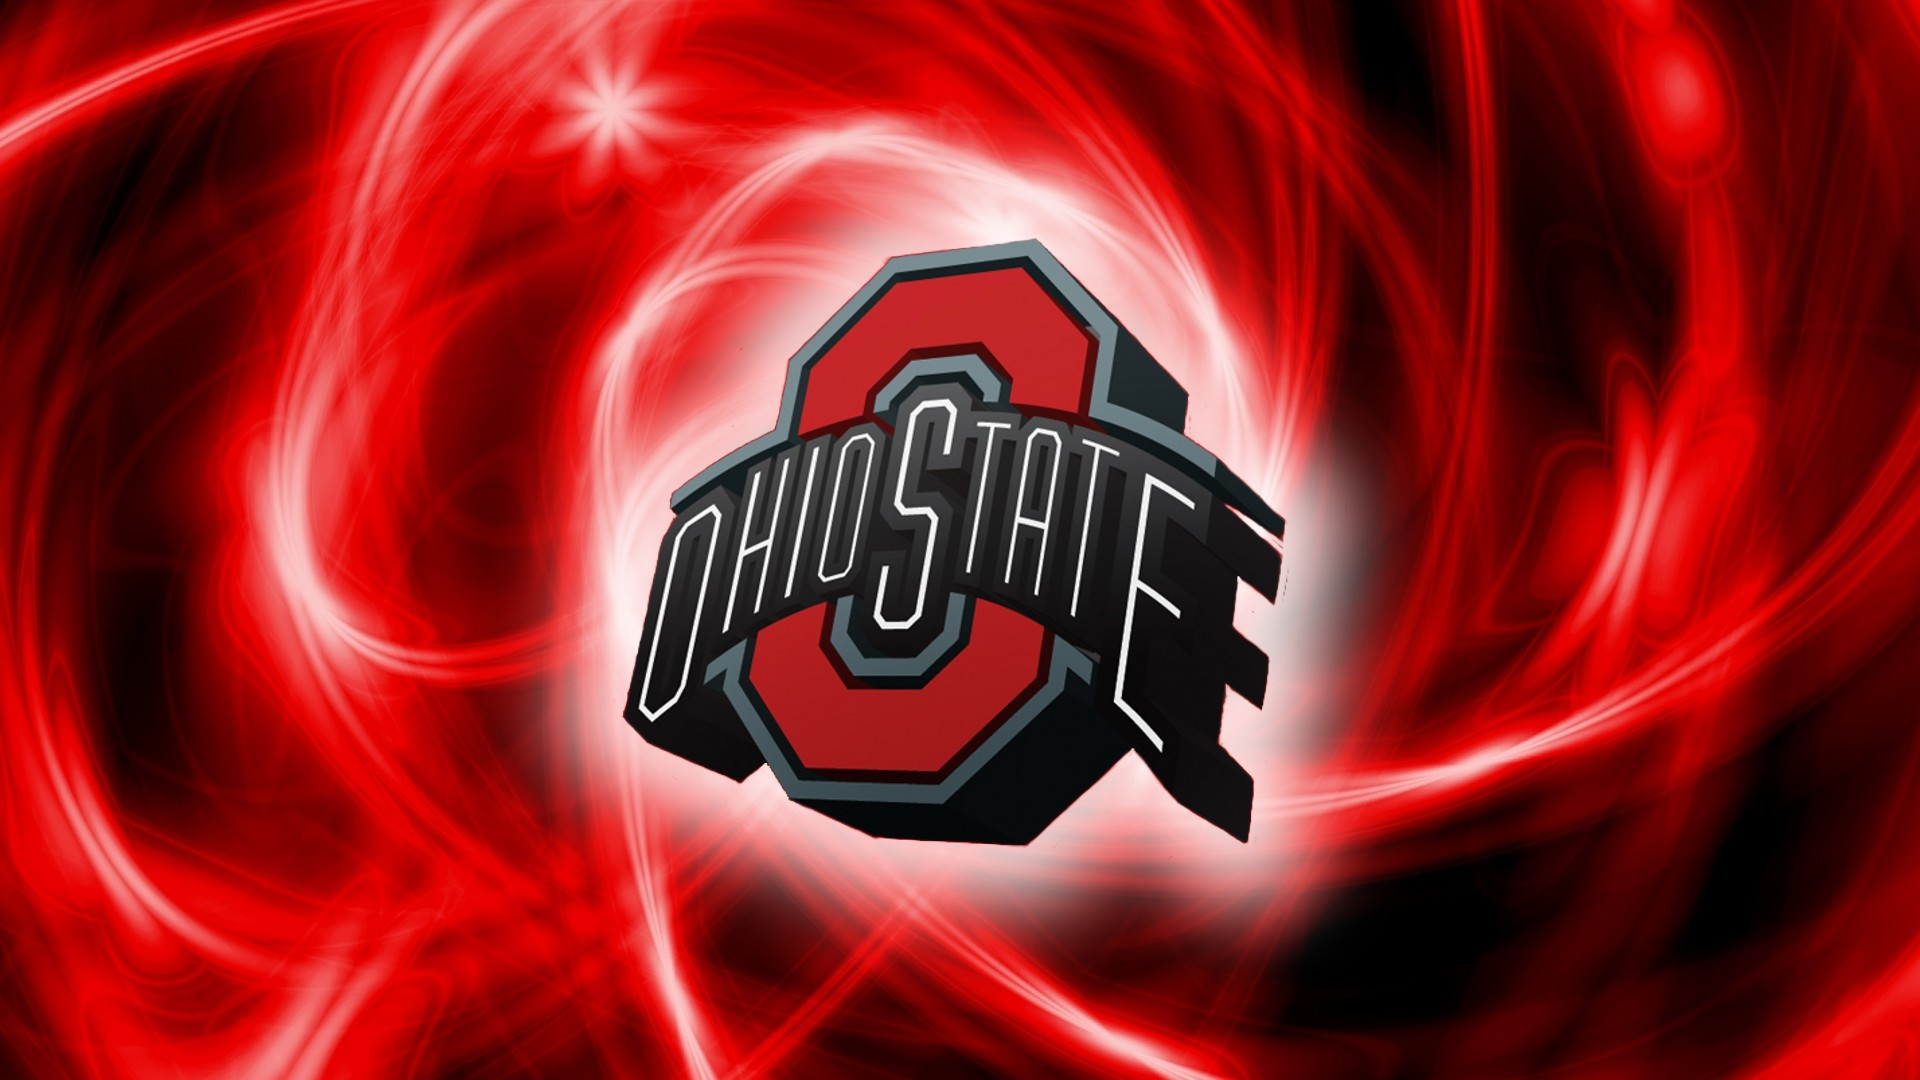 1920x1080 OSU Wallpaper 209 - Ohio State Football Wallpaper (29088652) - Fanpop